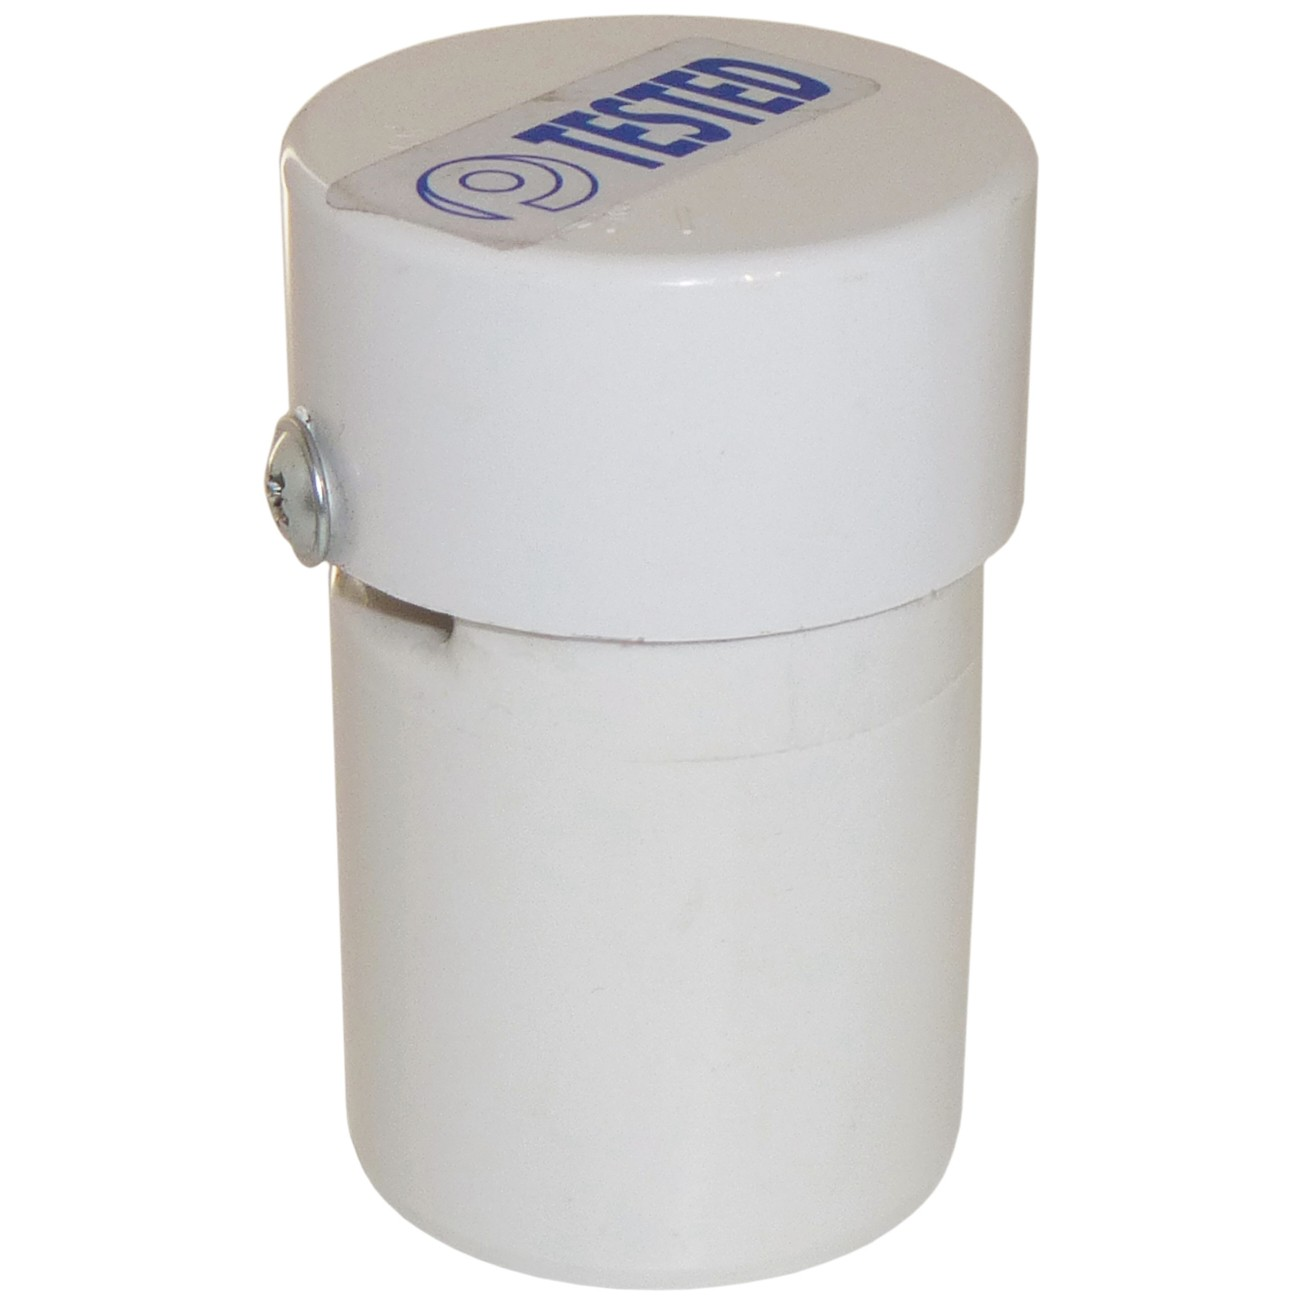 Polypipe 40mm Solvent Weld Waste Anti-Syphon Unit - White